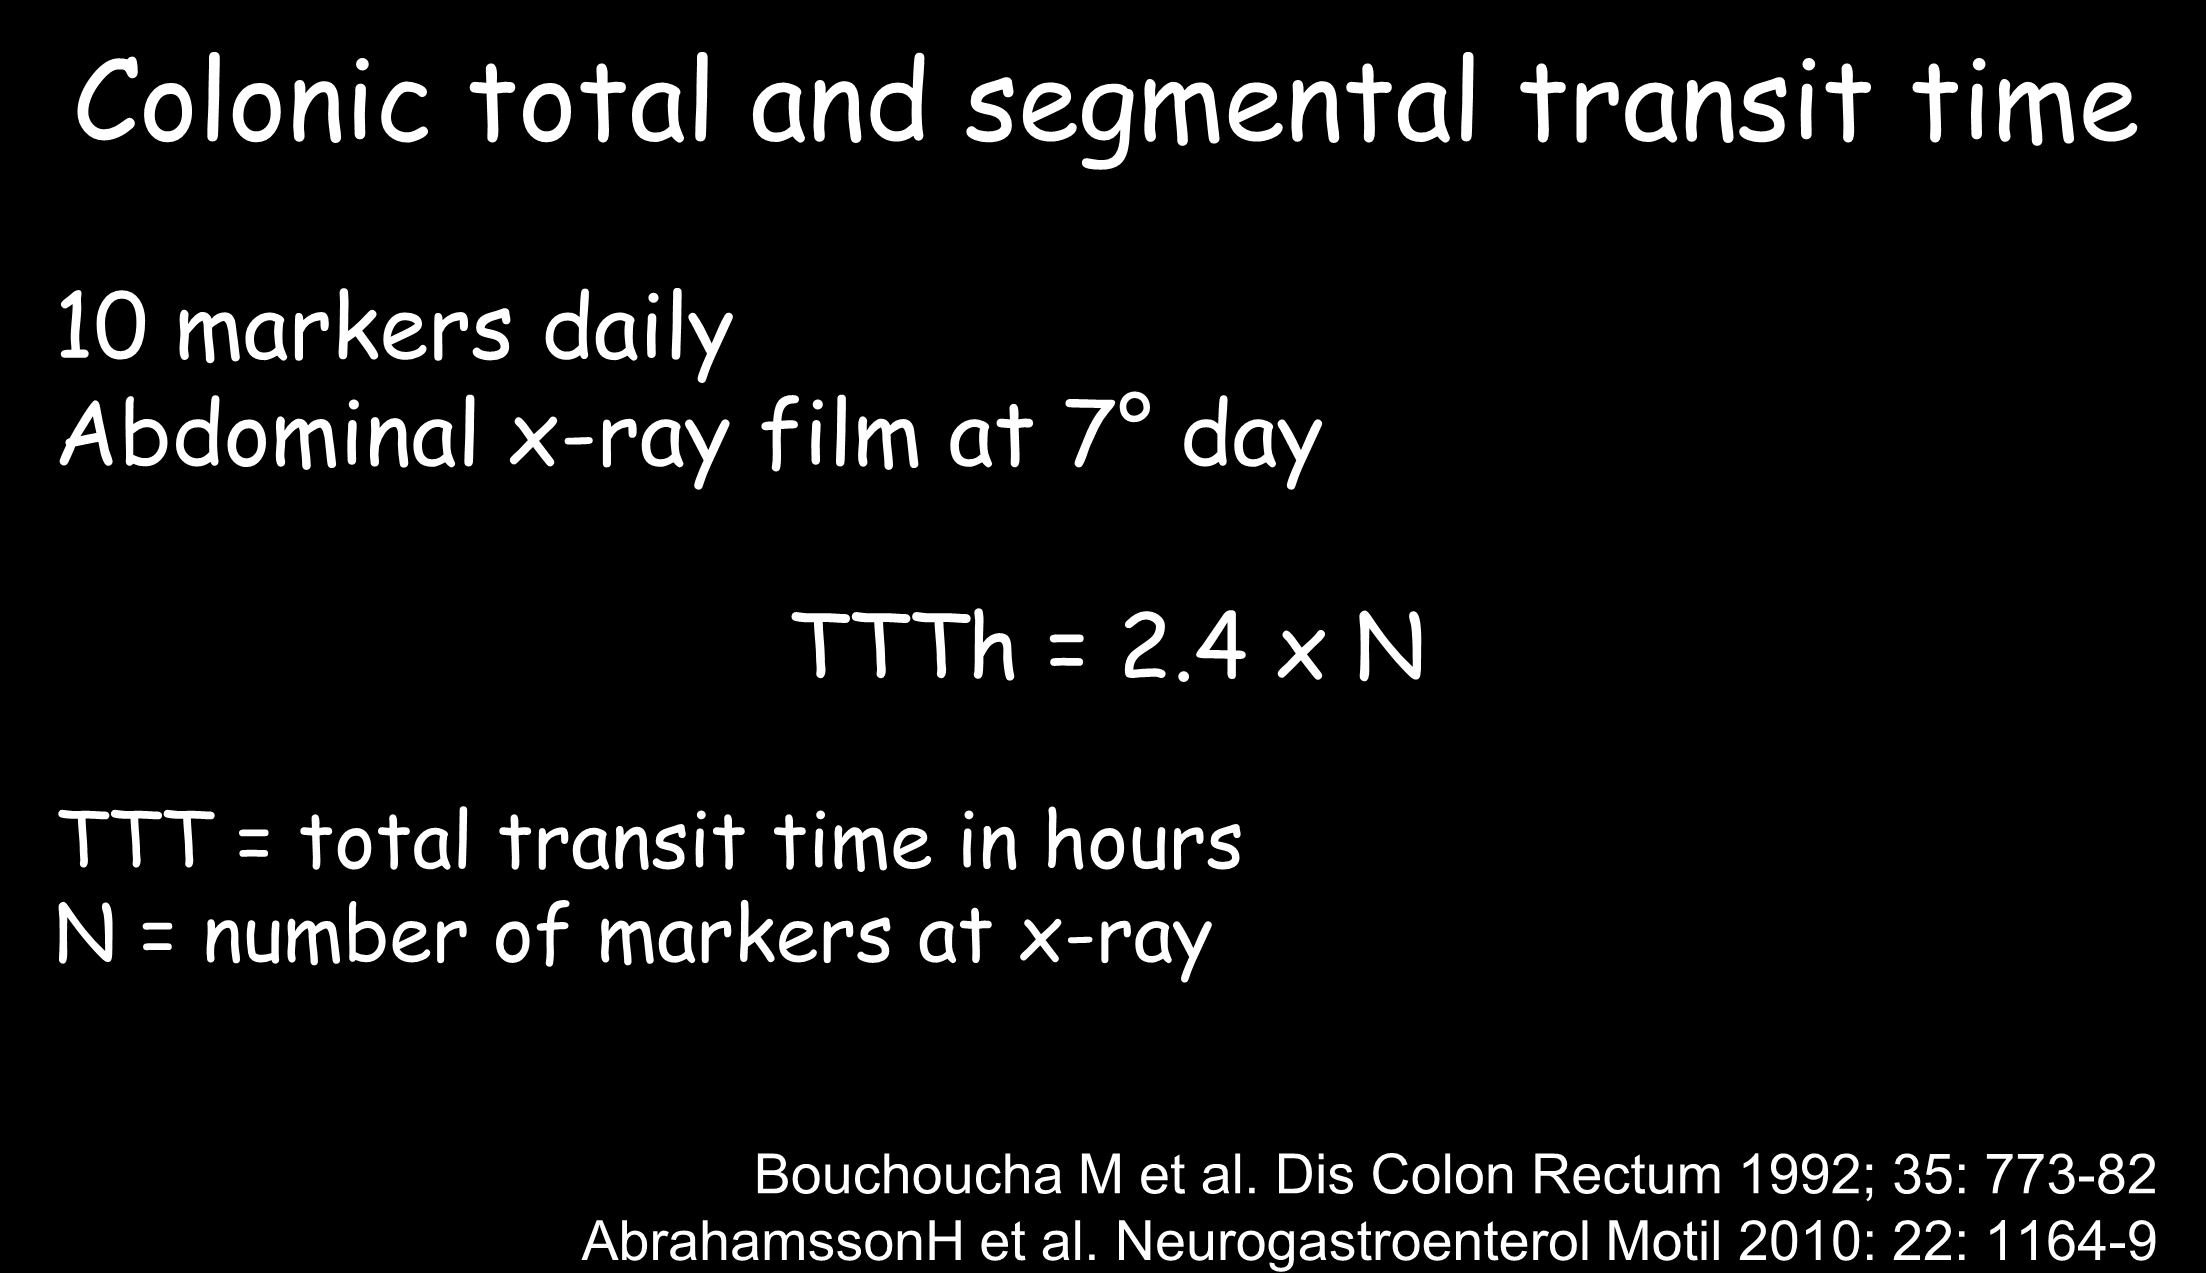 Colonic total and segmental transit time 10 markers daily Abdominal x-ray film at 7 day TTTh = 2.